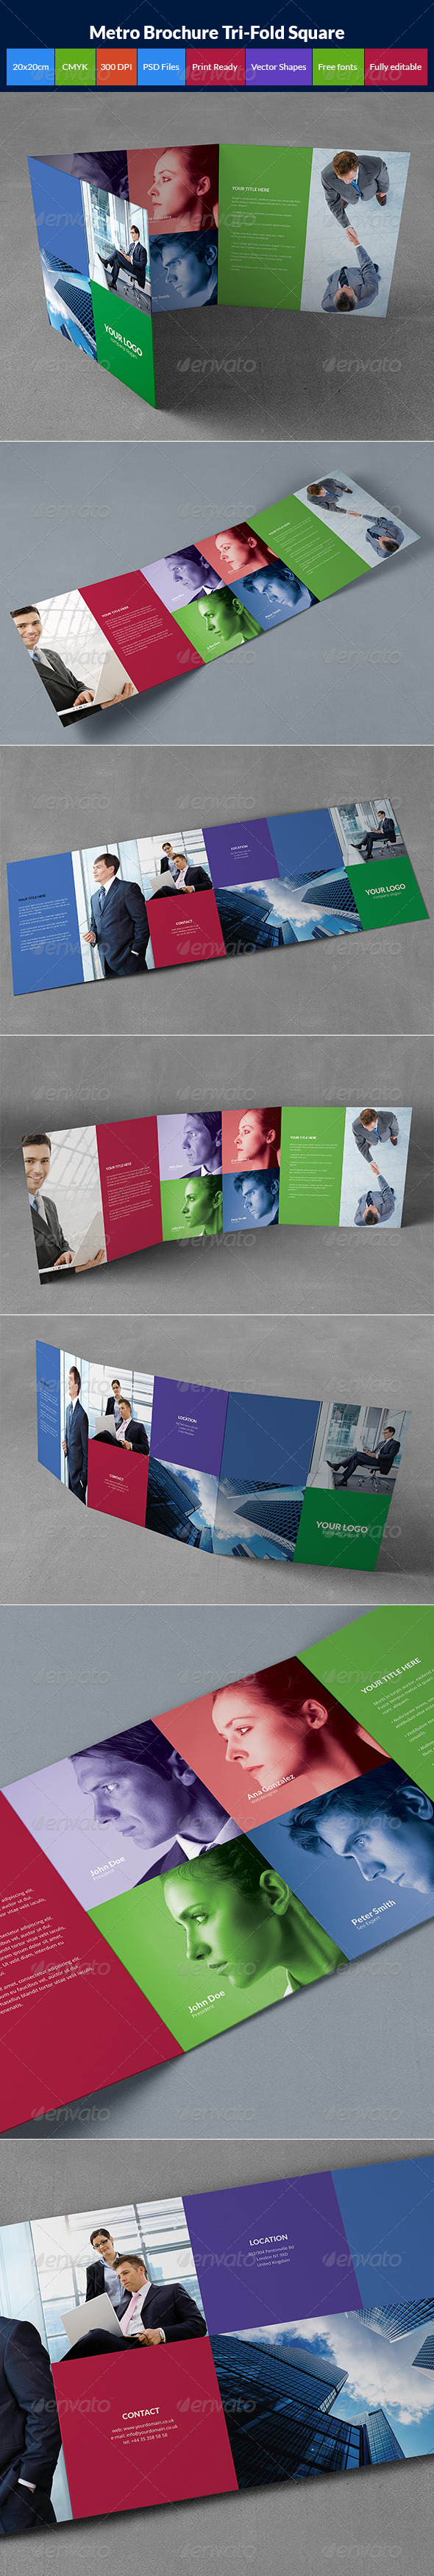 GraphicRiver Metro brochure tri-fold square 8563474